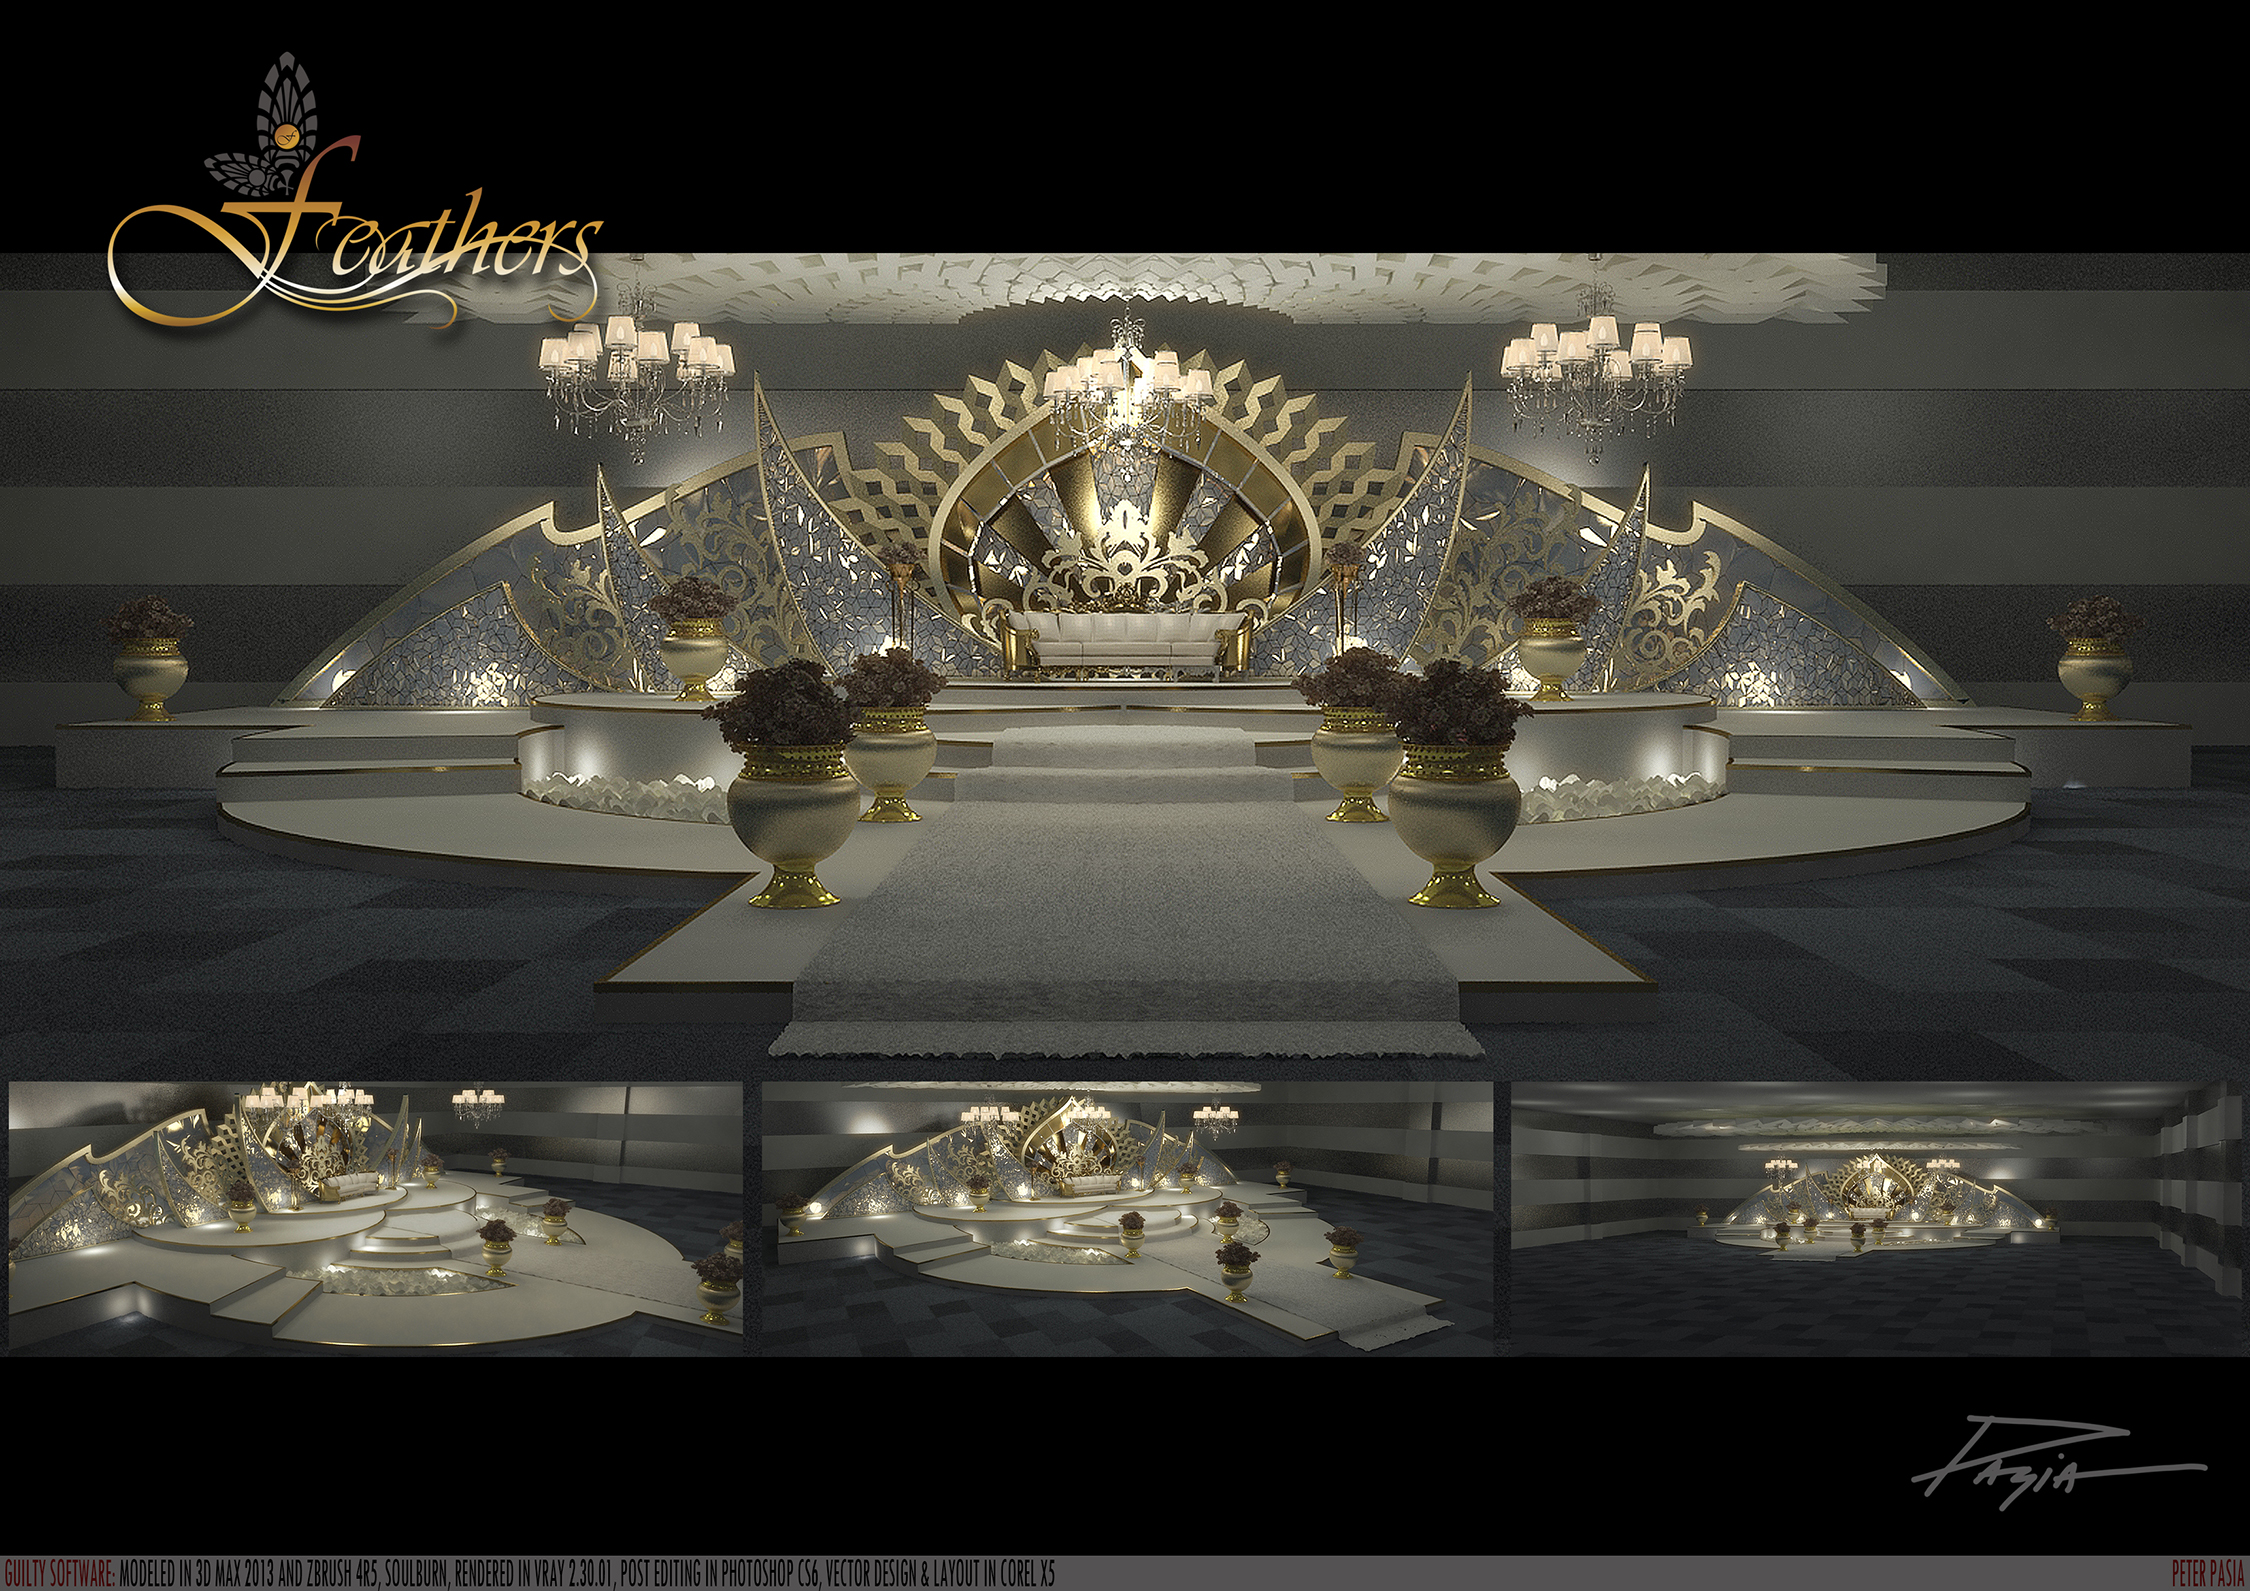 Stage Design By Peter Pasia At